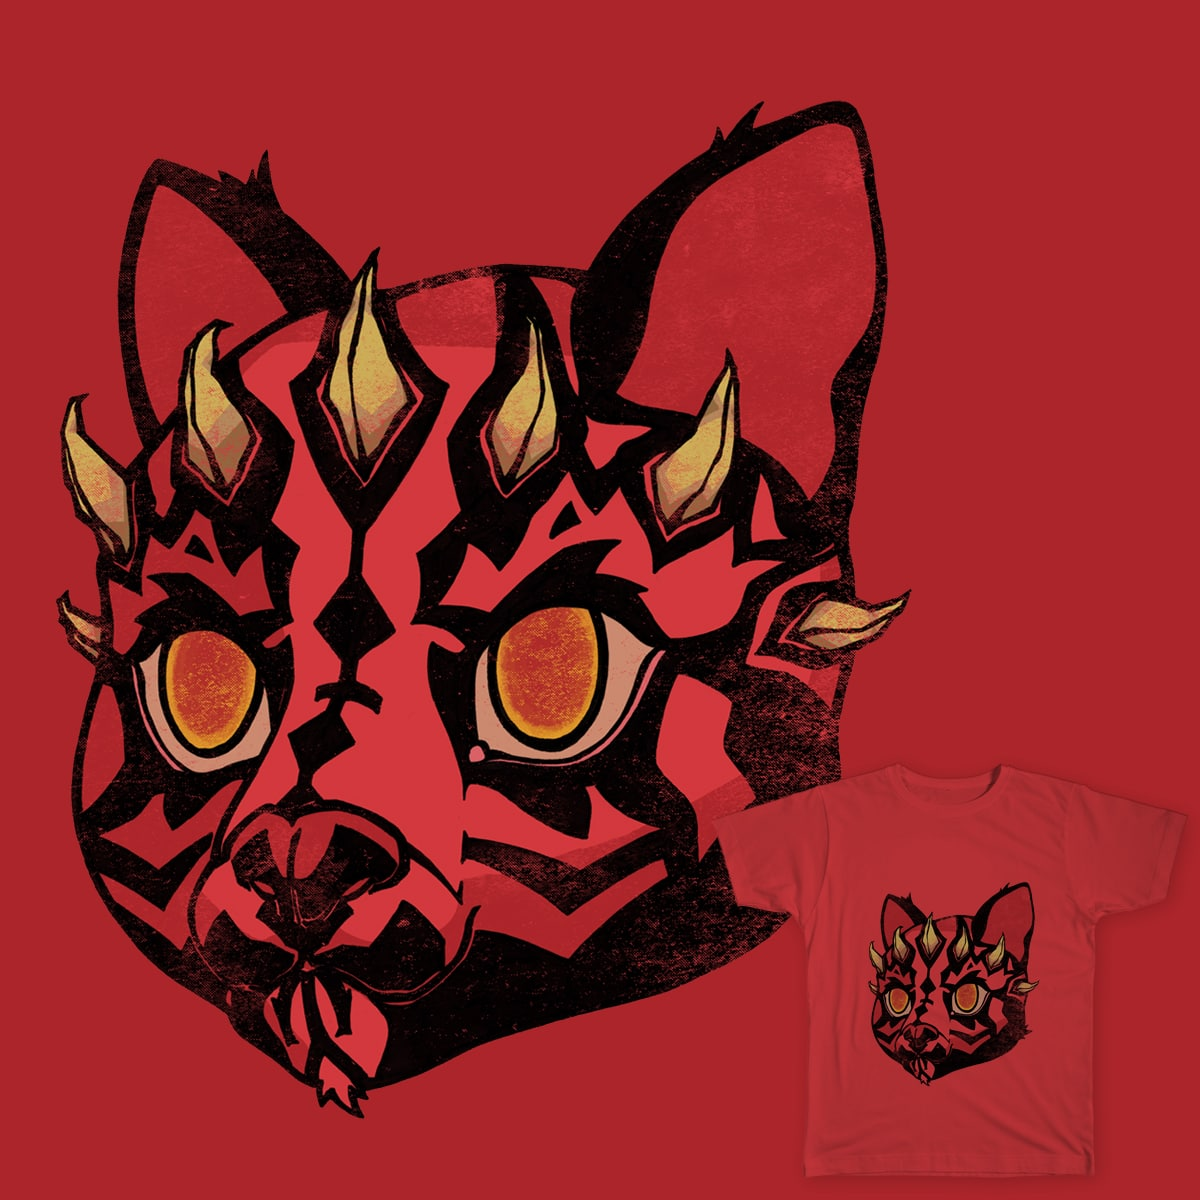 Darth Kitty by juanpa.tovar on Threadless